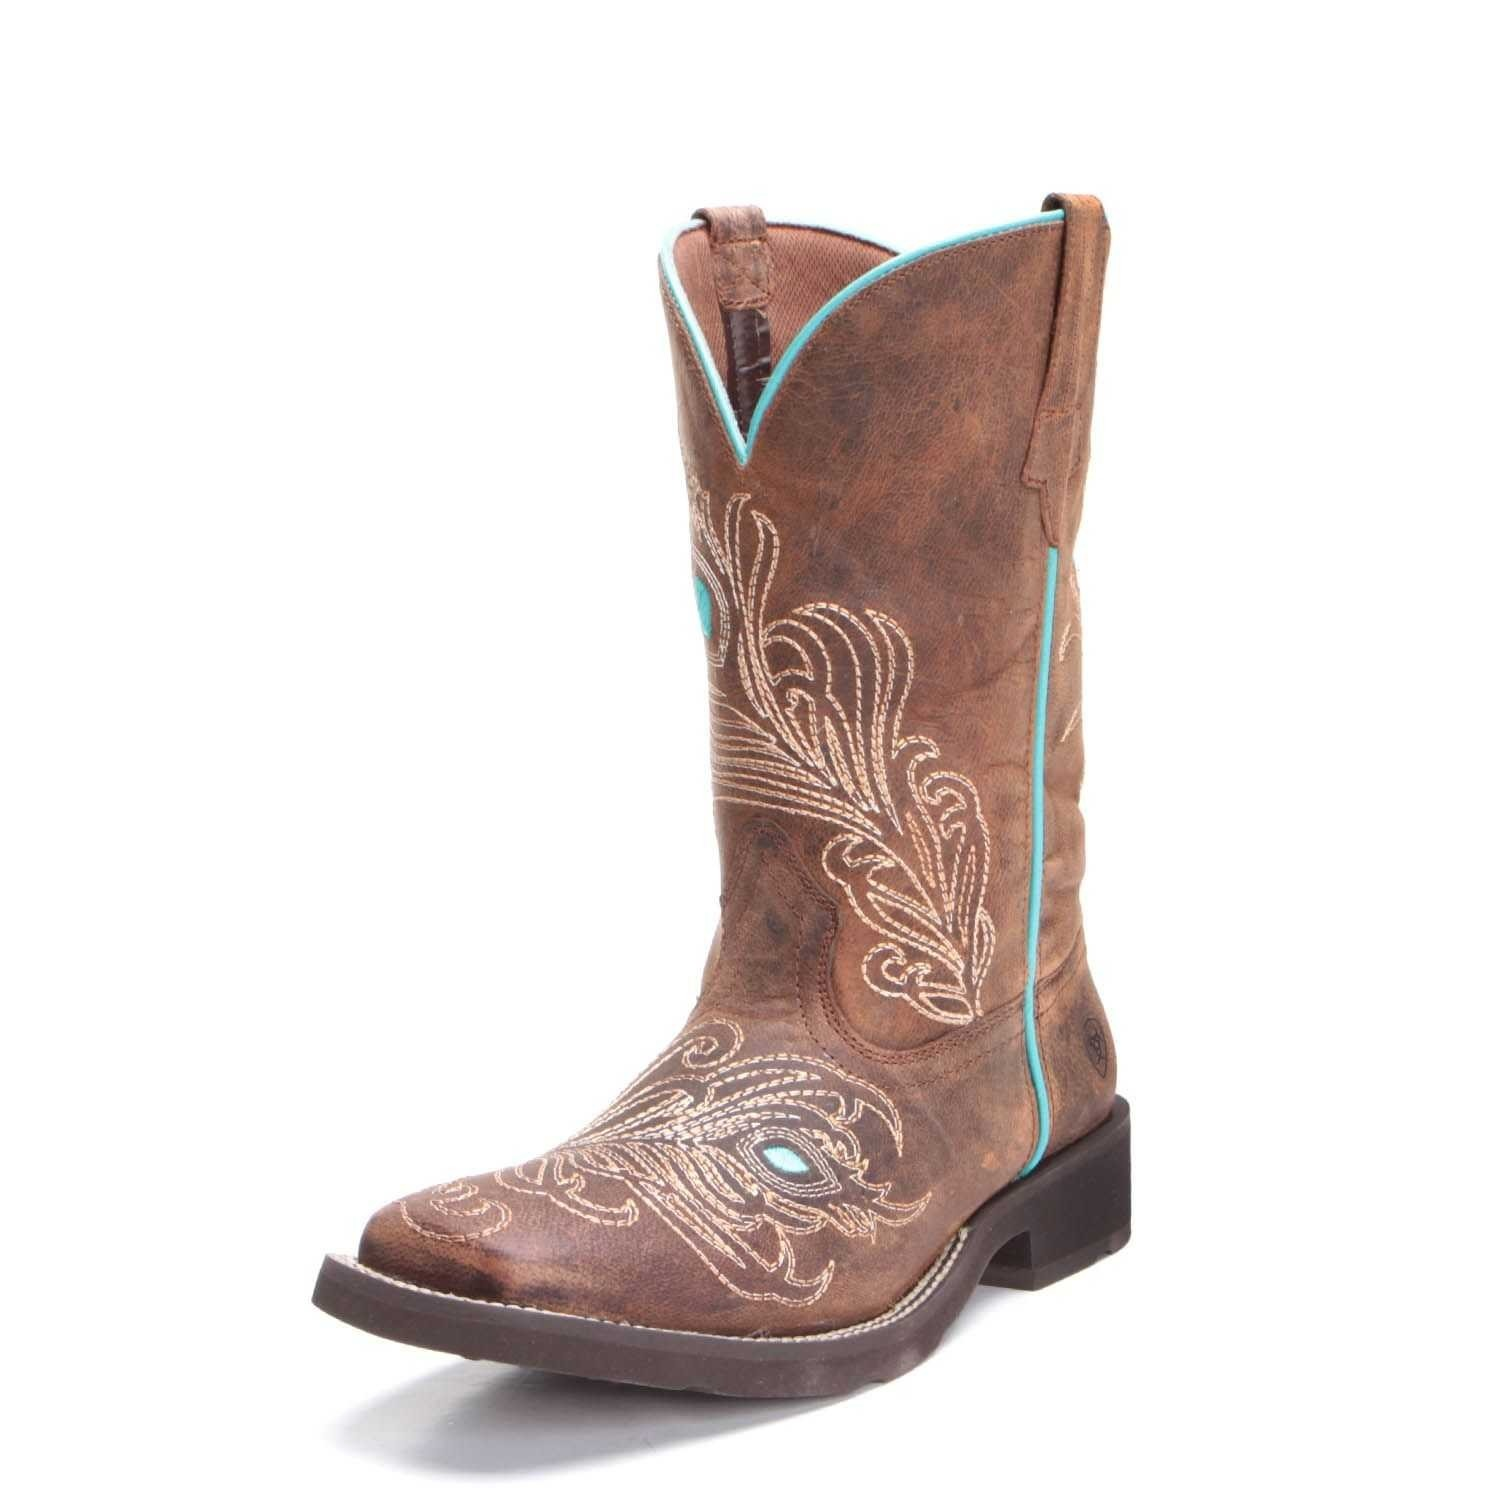 Ariat Boots ARIAT BRIGHT EYES 10027252